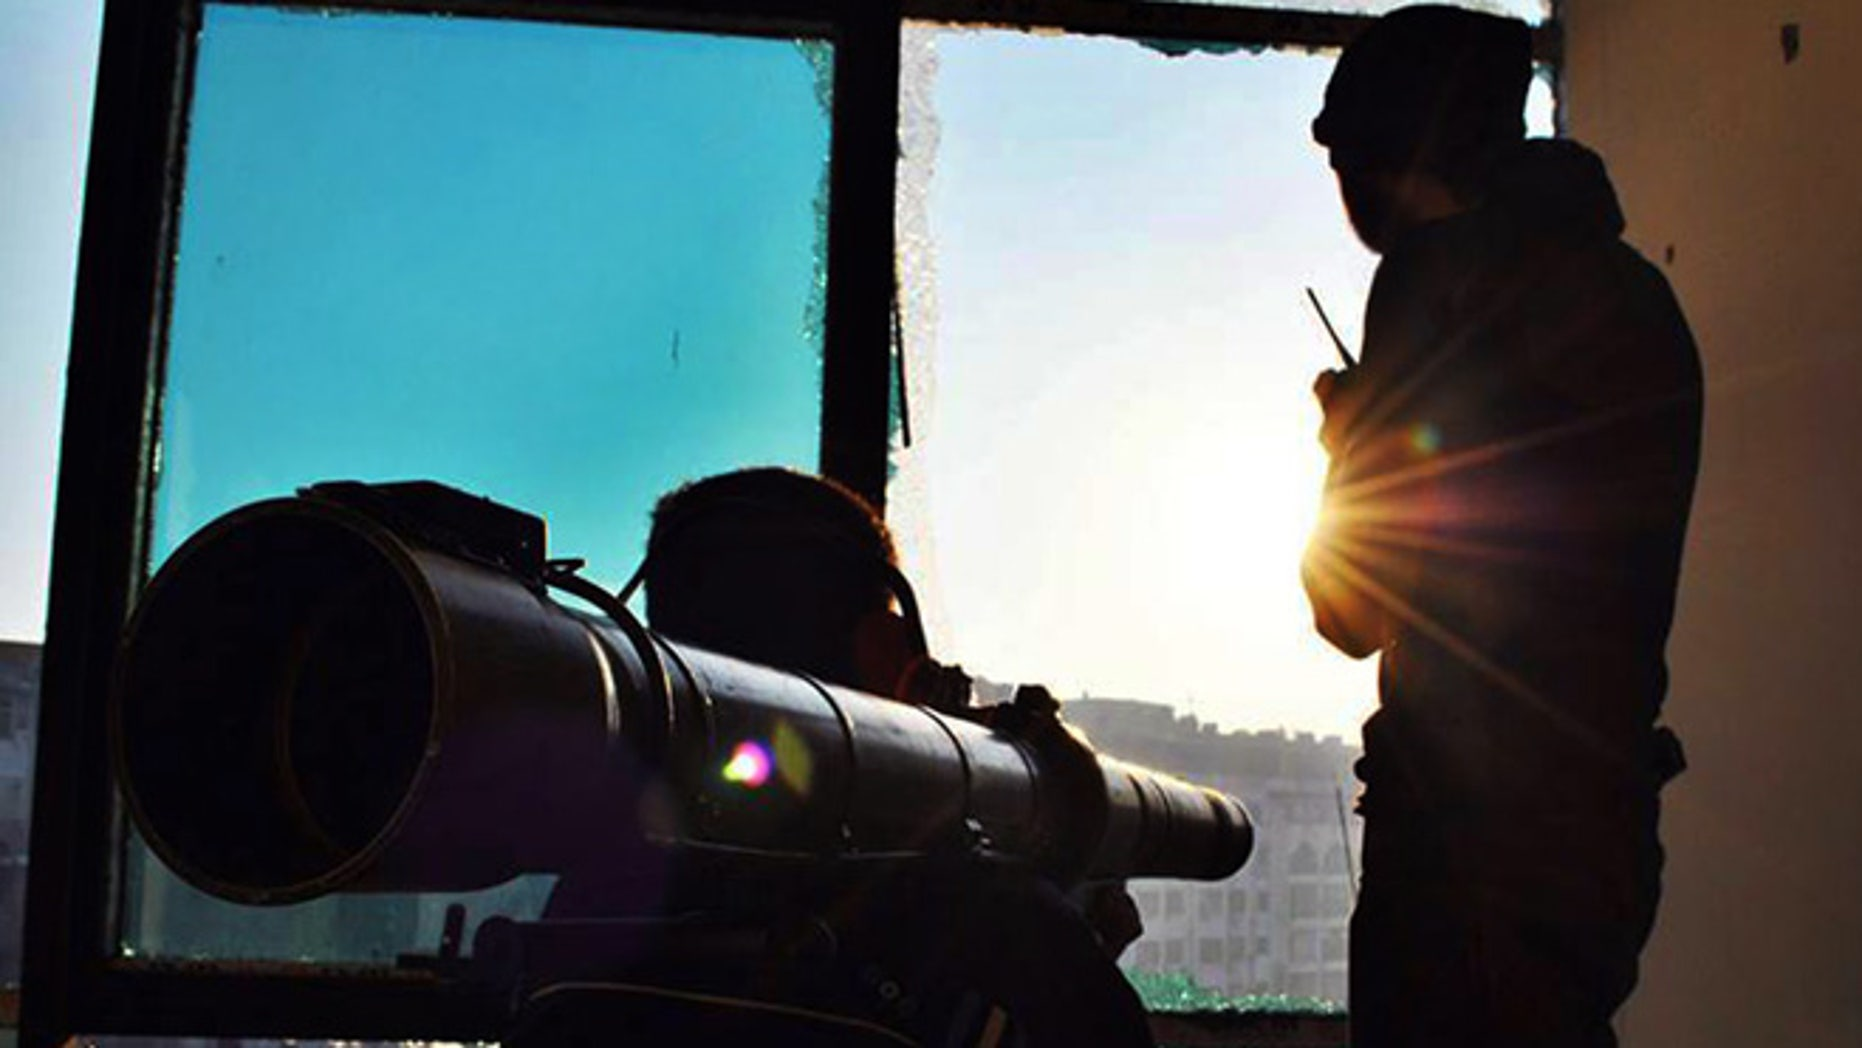 June 18, 2013: This citizen journalism image provided by Lens Young Homsi, which has been authenticated based on its contents and other AP reporting, shows Syrian rebels using a rocket launcher to attack Syrian soldiers loyal to Syrian president Bashar Assad, in Homs province, Syria. Syrian warplanes bombed rebel positions near a contested military air base in the north of Syria on Tuesday, activists said, while President Bashar Assad's forces nearby pressed ahead with an offensive against opposition fighters in the country's largest city Aleppo.